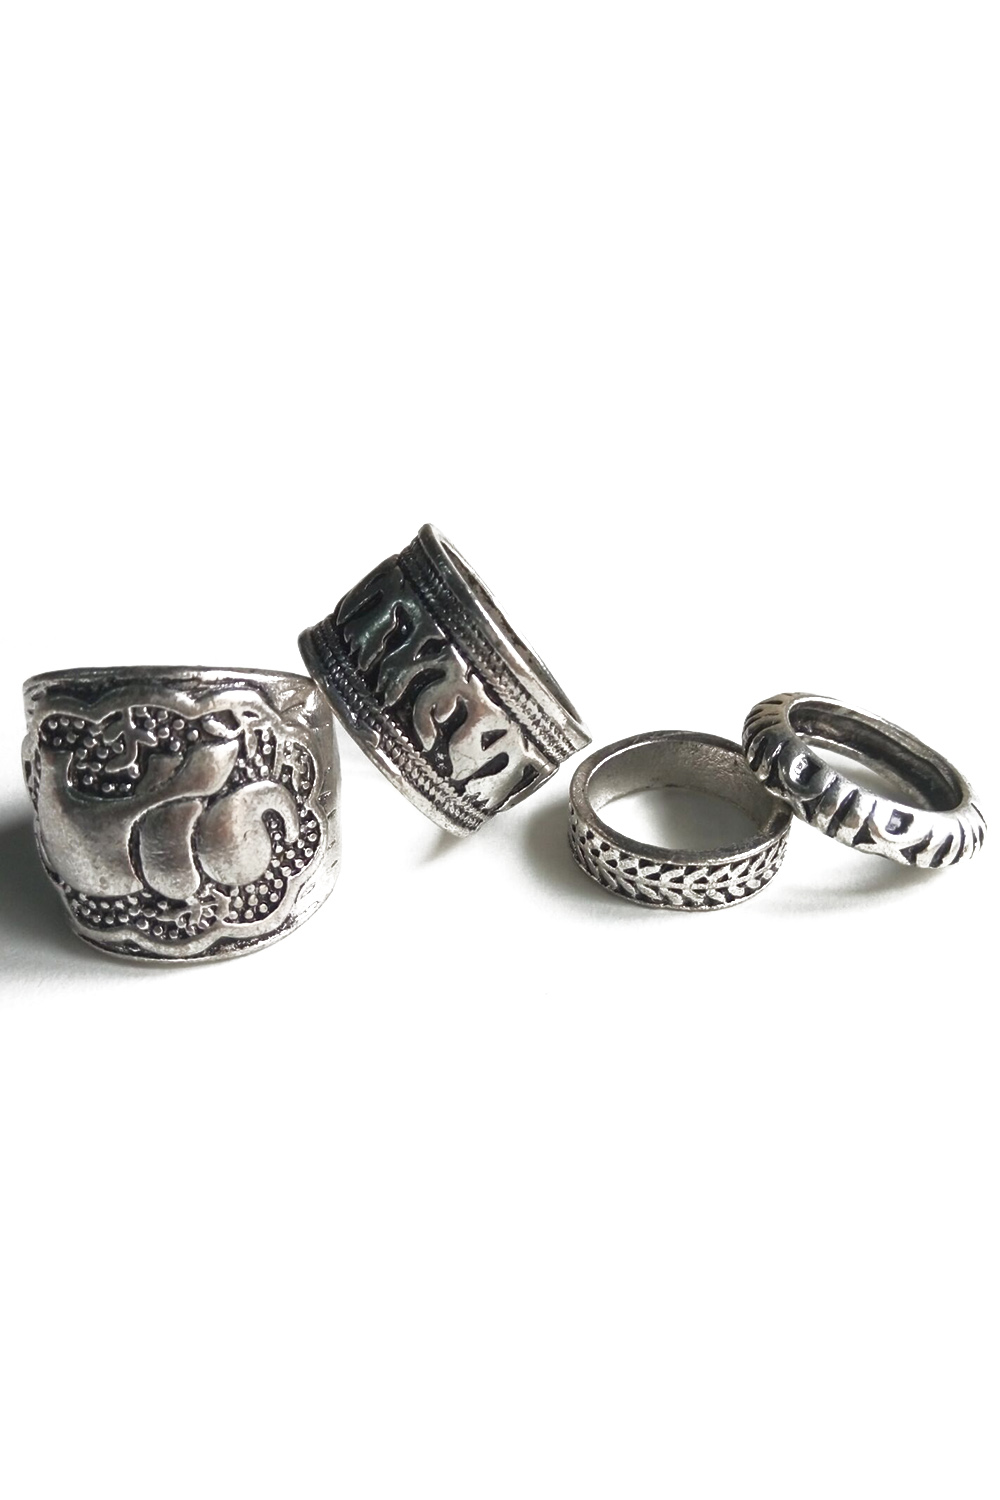 Elephant Head Cameo Ethnic Style Rings For Women